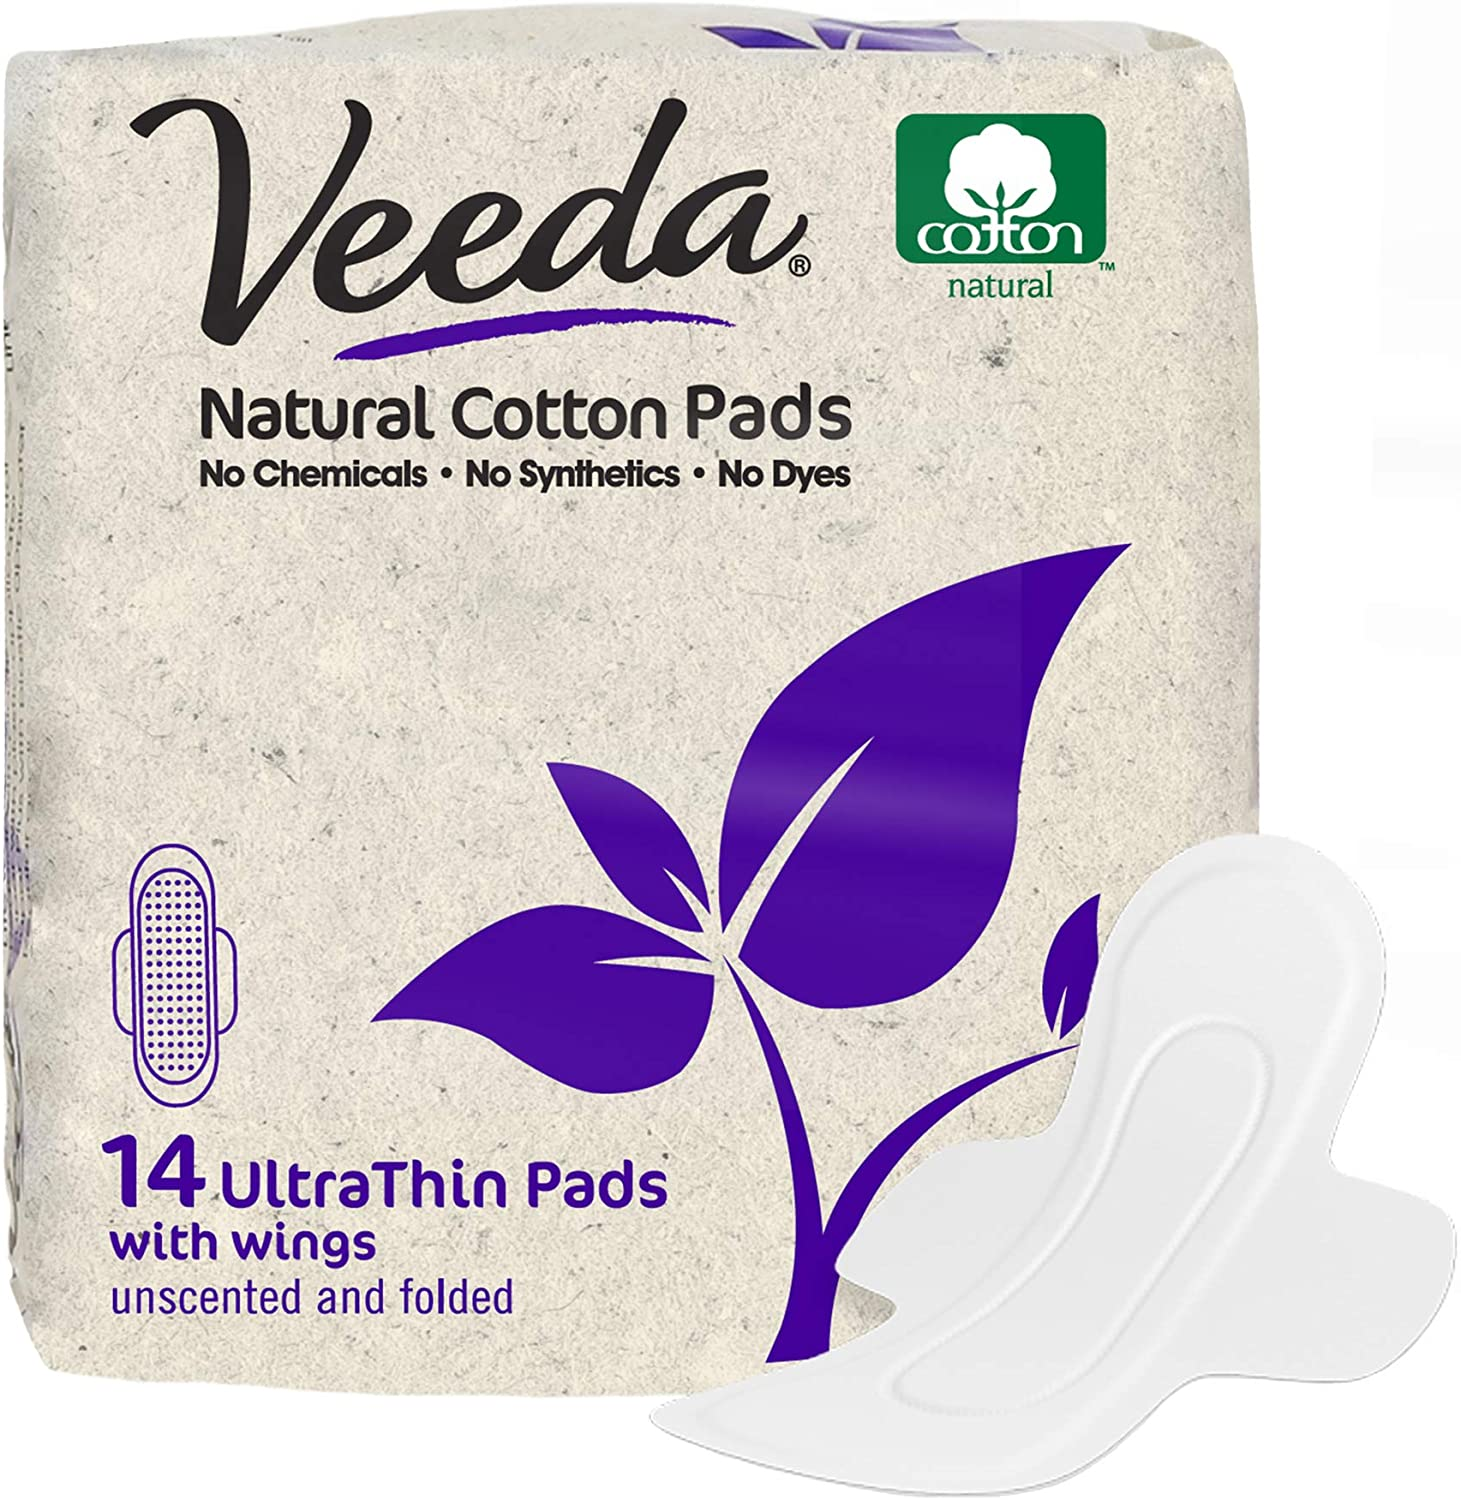 Veeda Ultra Thin Super Absorbent Day Pads Are Always Chlorine Pesticide Dye and Fragrance Free Natural Cotton Sanitary Napkins, 14 Count